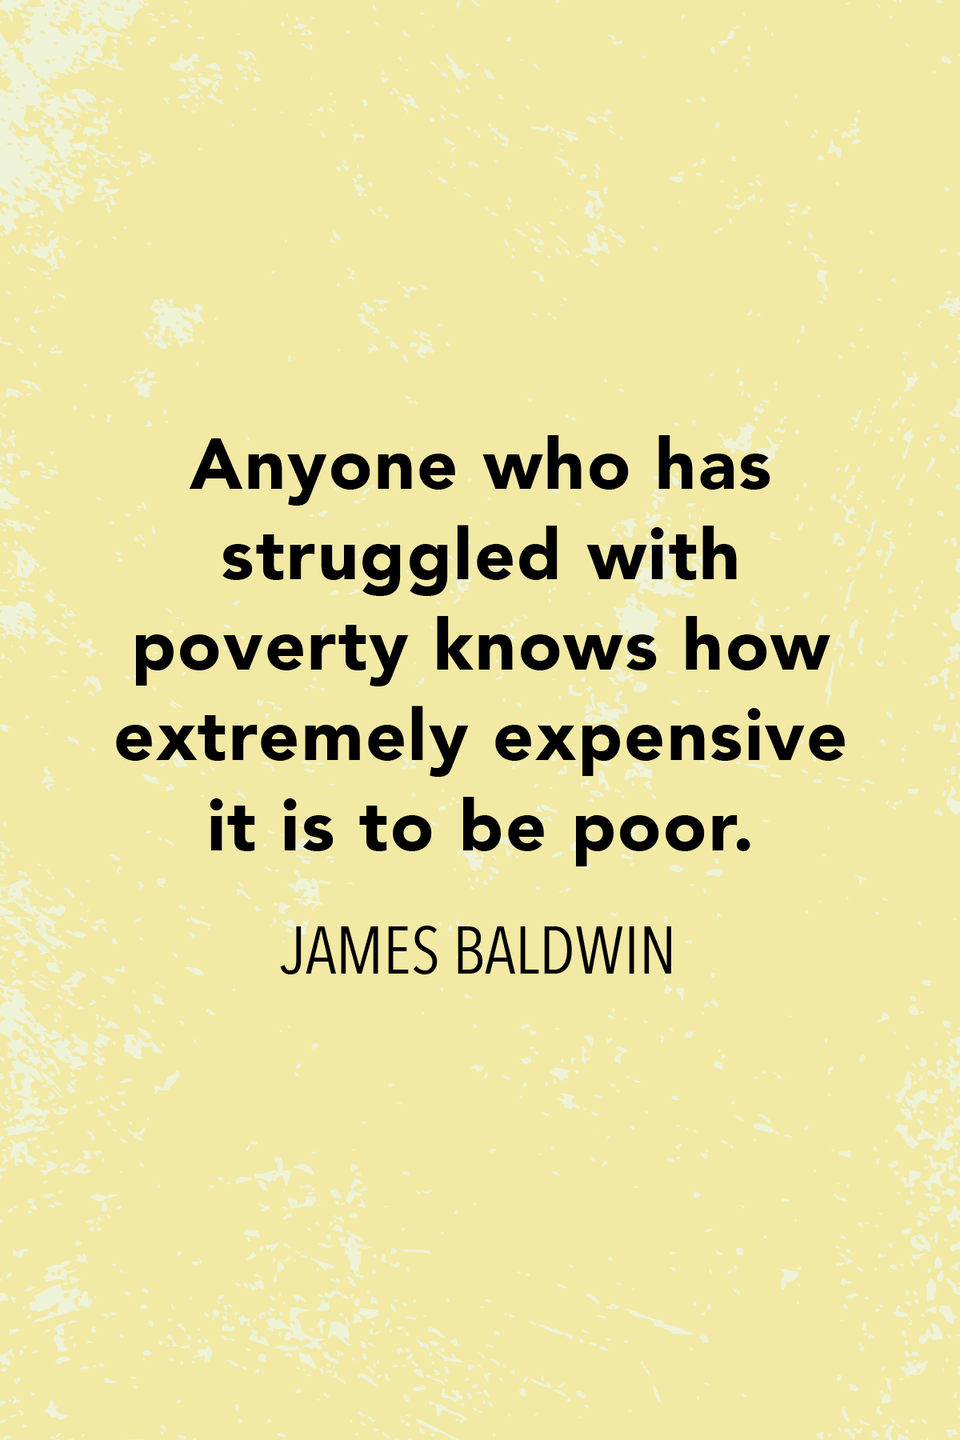 """<p>""""Anyone who has struggled with poverty knows how extremely expensive it is to be poor,"""" he said in 1961's <em><a href=""""https://www.amazon.com/Nobody-Knows-Name-James-Baldwin/dp/0679744738?tag=syn-yahoo-20&ascsubtag=%5Bartid%7C10072.g.32842156%5Bsrc%7Cyahoo-us"""" rel=""""nofollow noopener"""" target=""""_blank"""" data-ylk=""""slk:Nobody Knows My Name"""" class=""""link rapid-noclick-resp"""">Nobody Knows My Name</a></em>.</p>"""